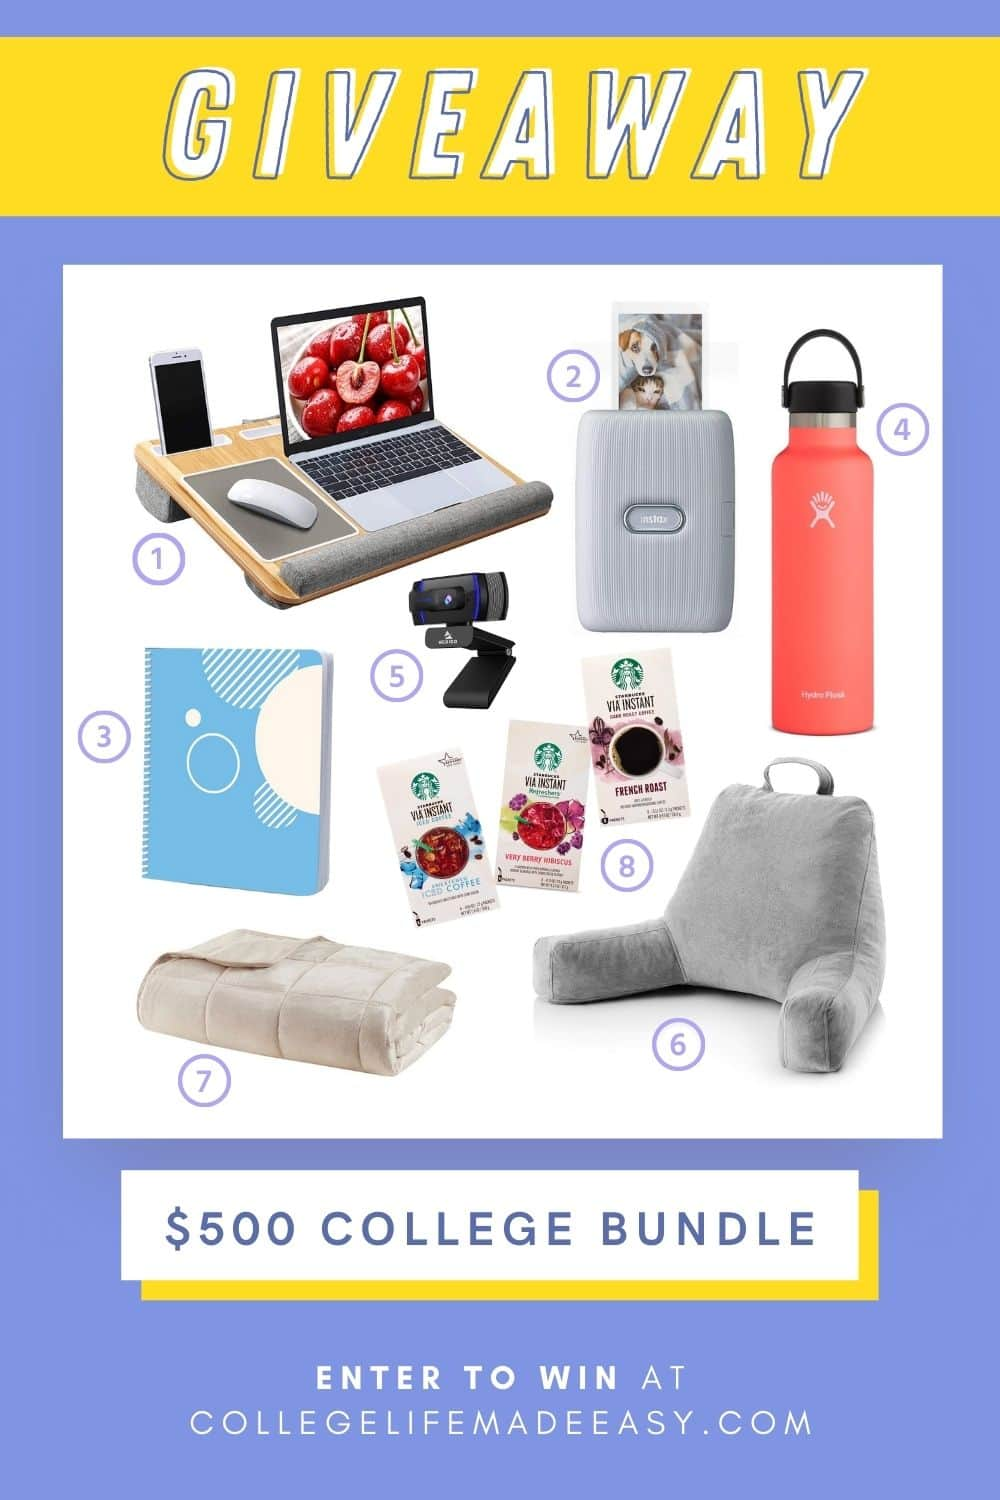 $500 college bundle giveaway on purple background featuring the prizes